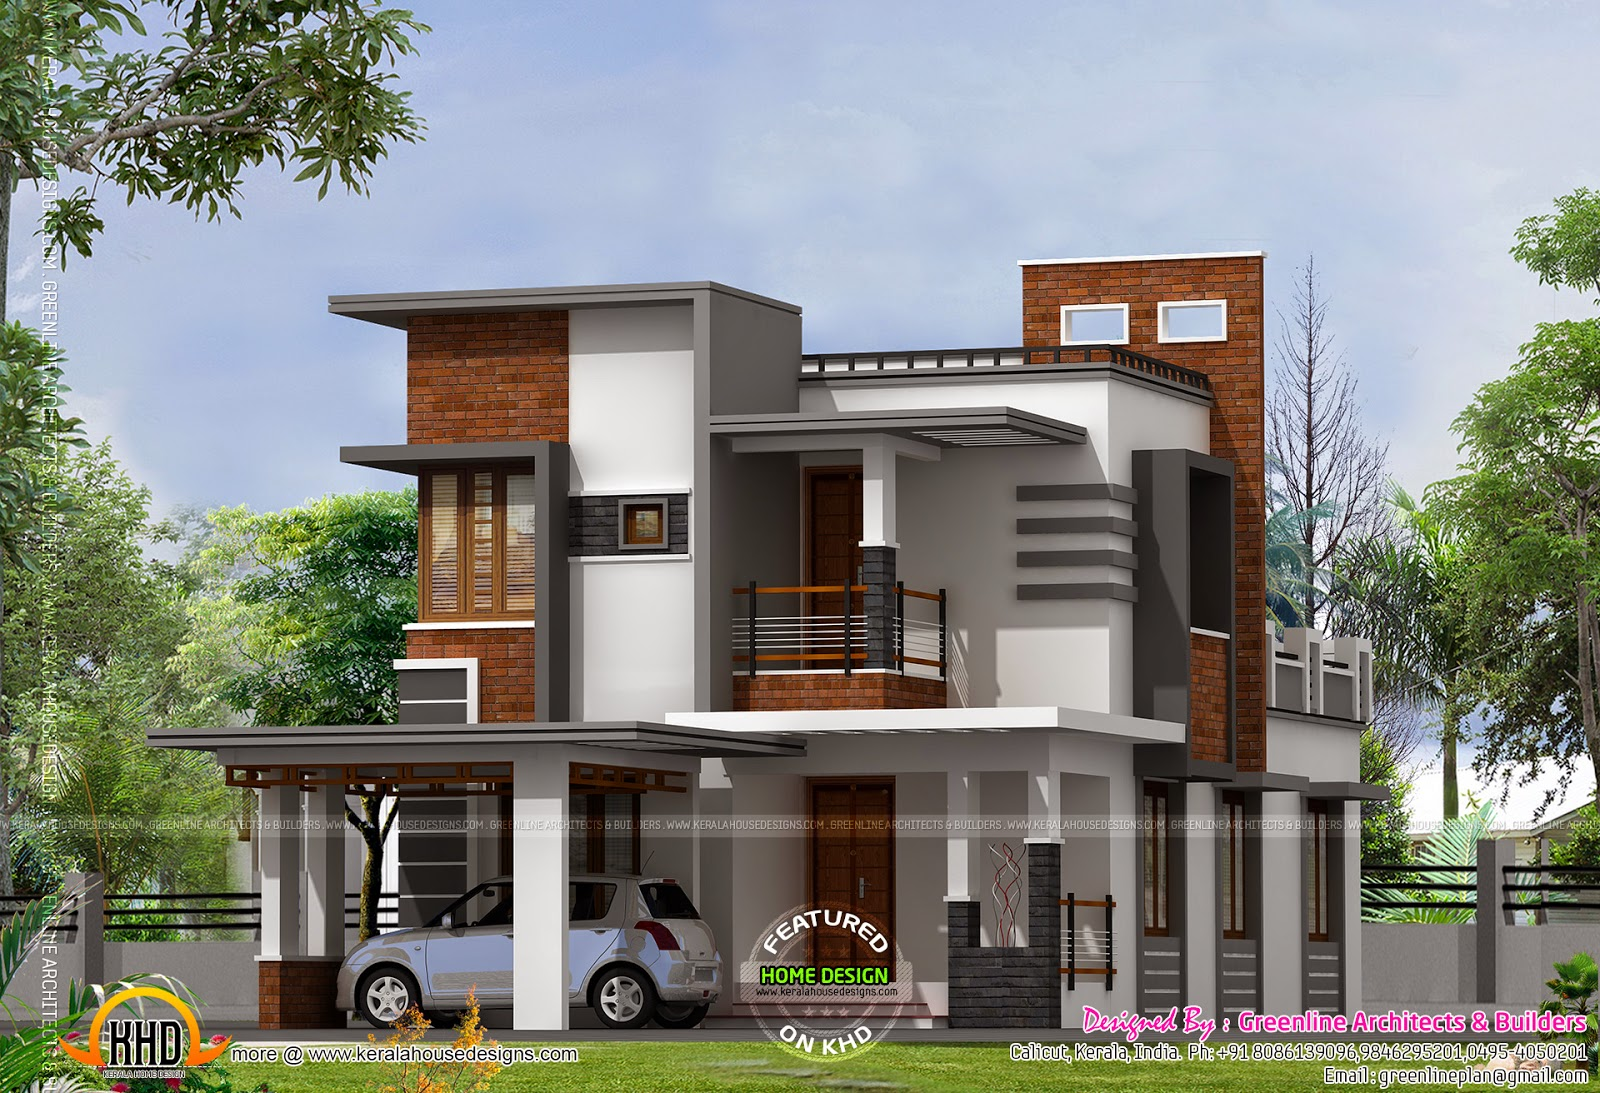 Low cost contemporary house kerala home design and floor for Home building plans and cost